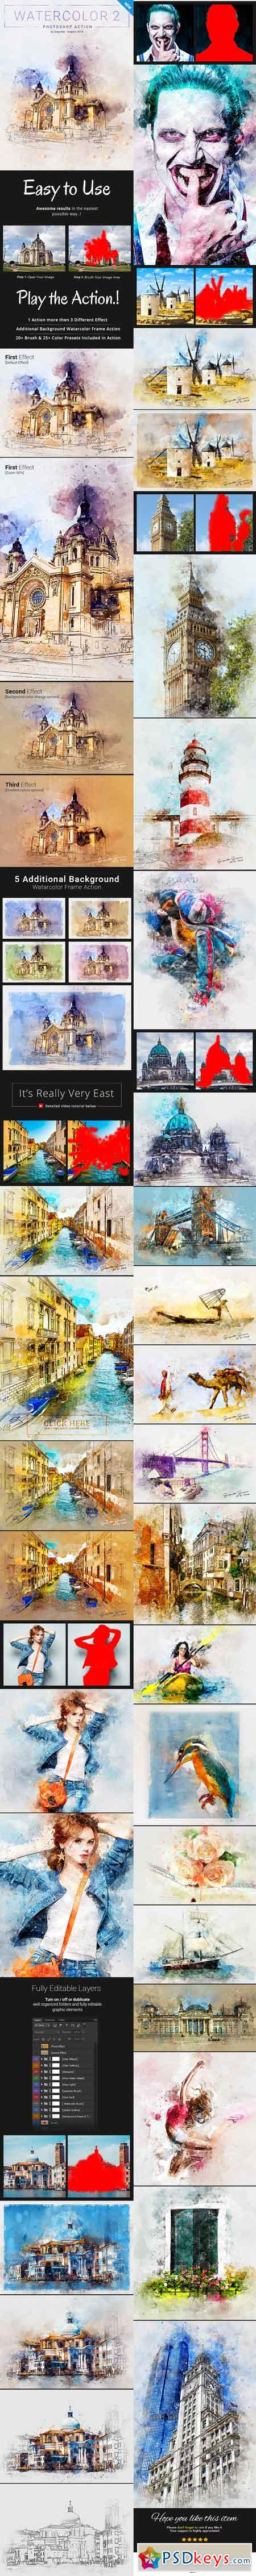 Watercolor 2 Artist Photoshop Action 21313459 » Free